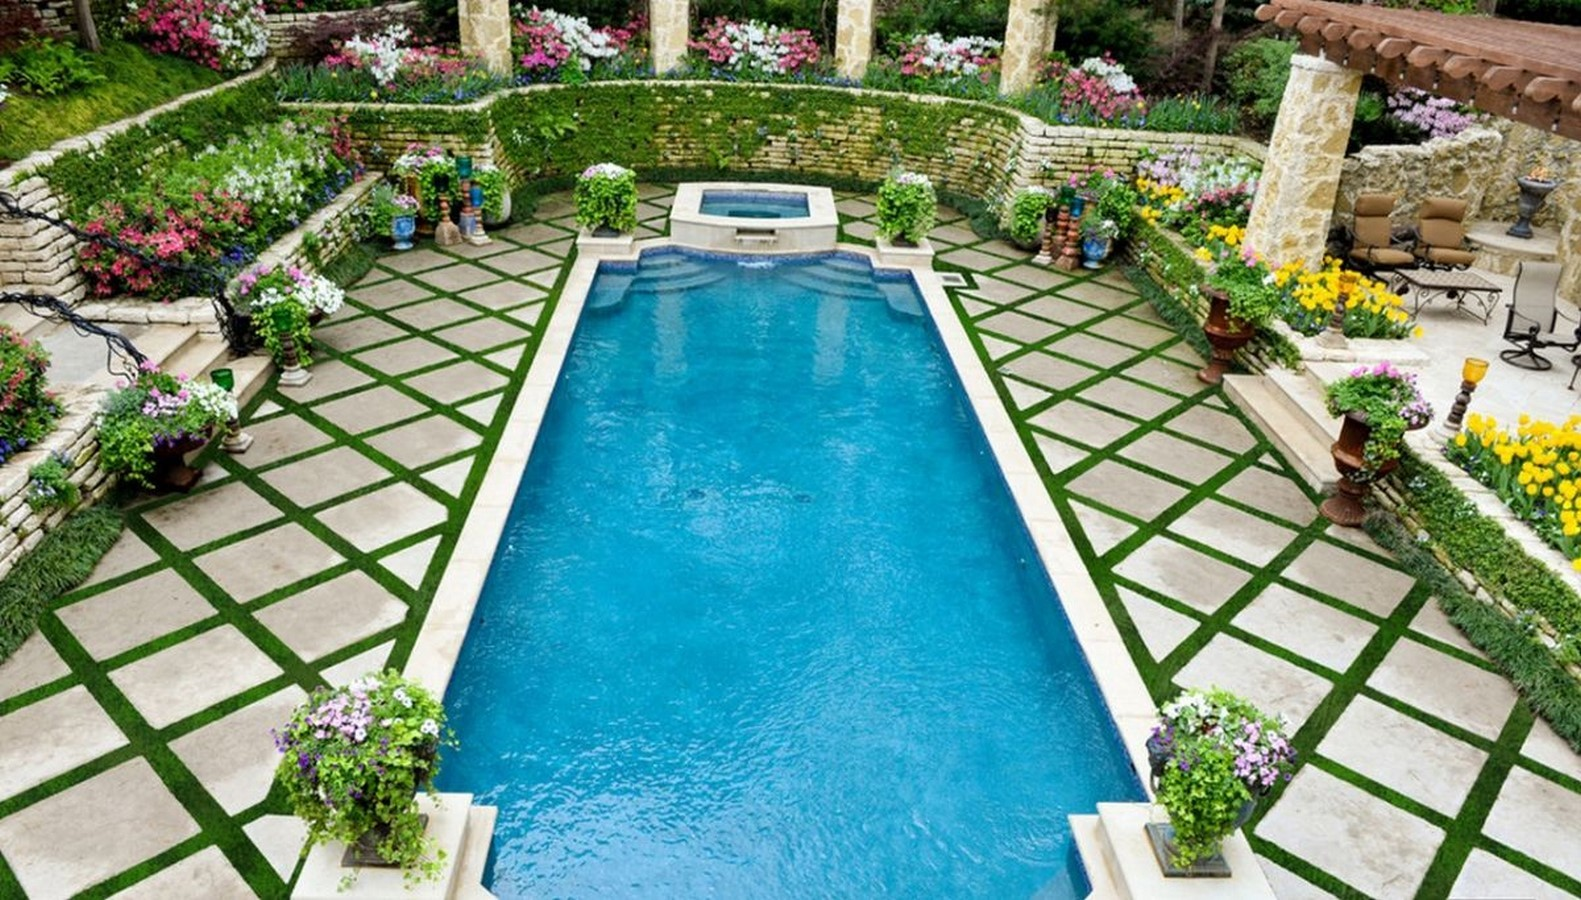 50 Ideas and Tips for Landscaping - Sheet20